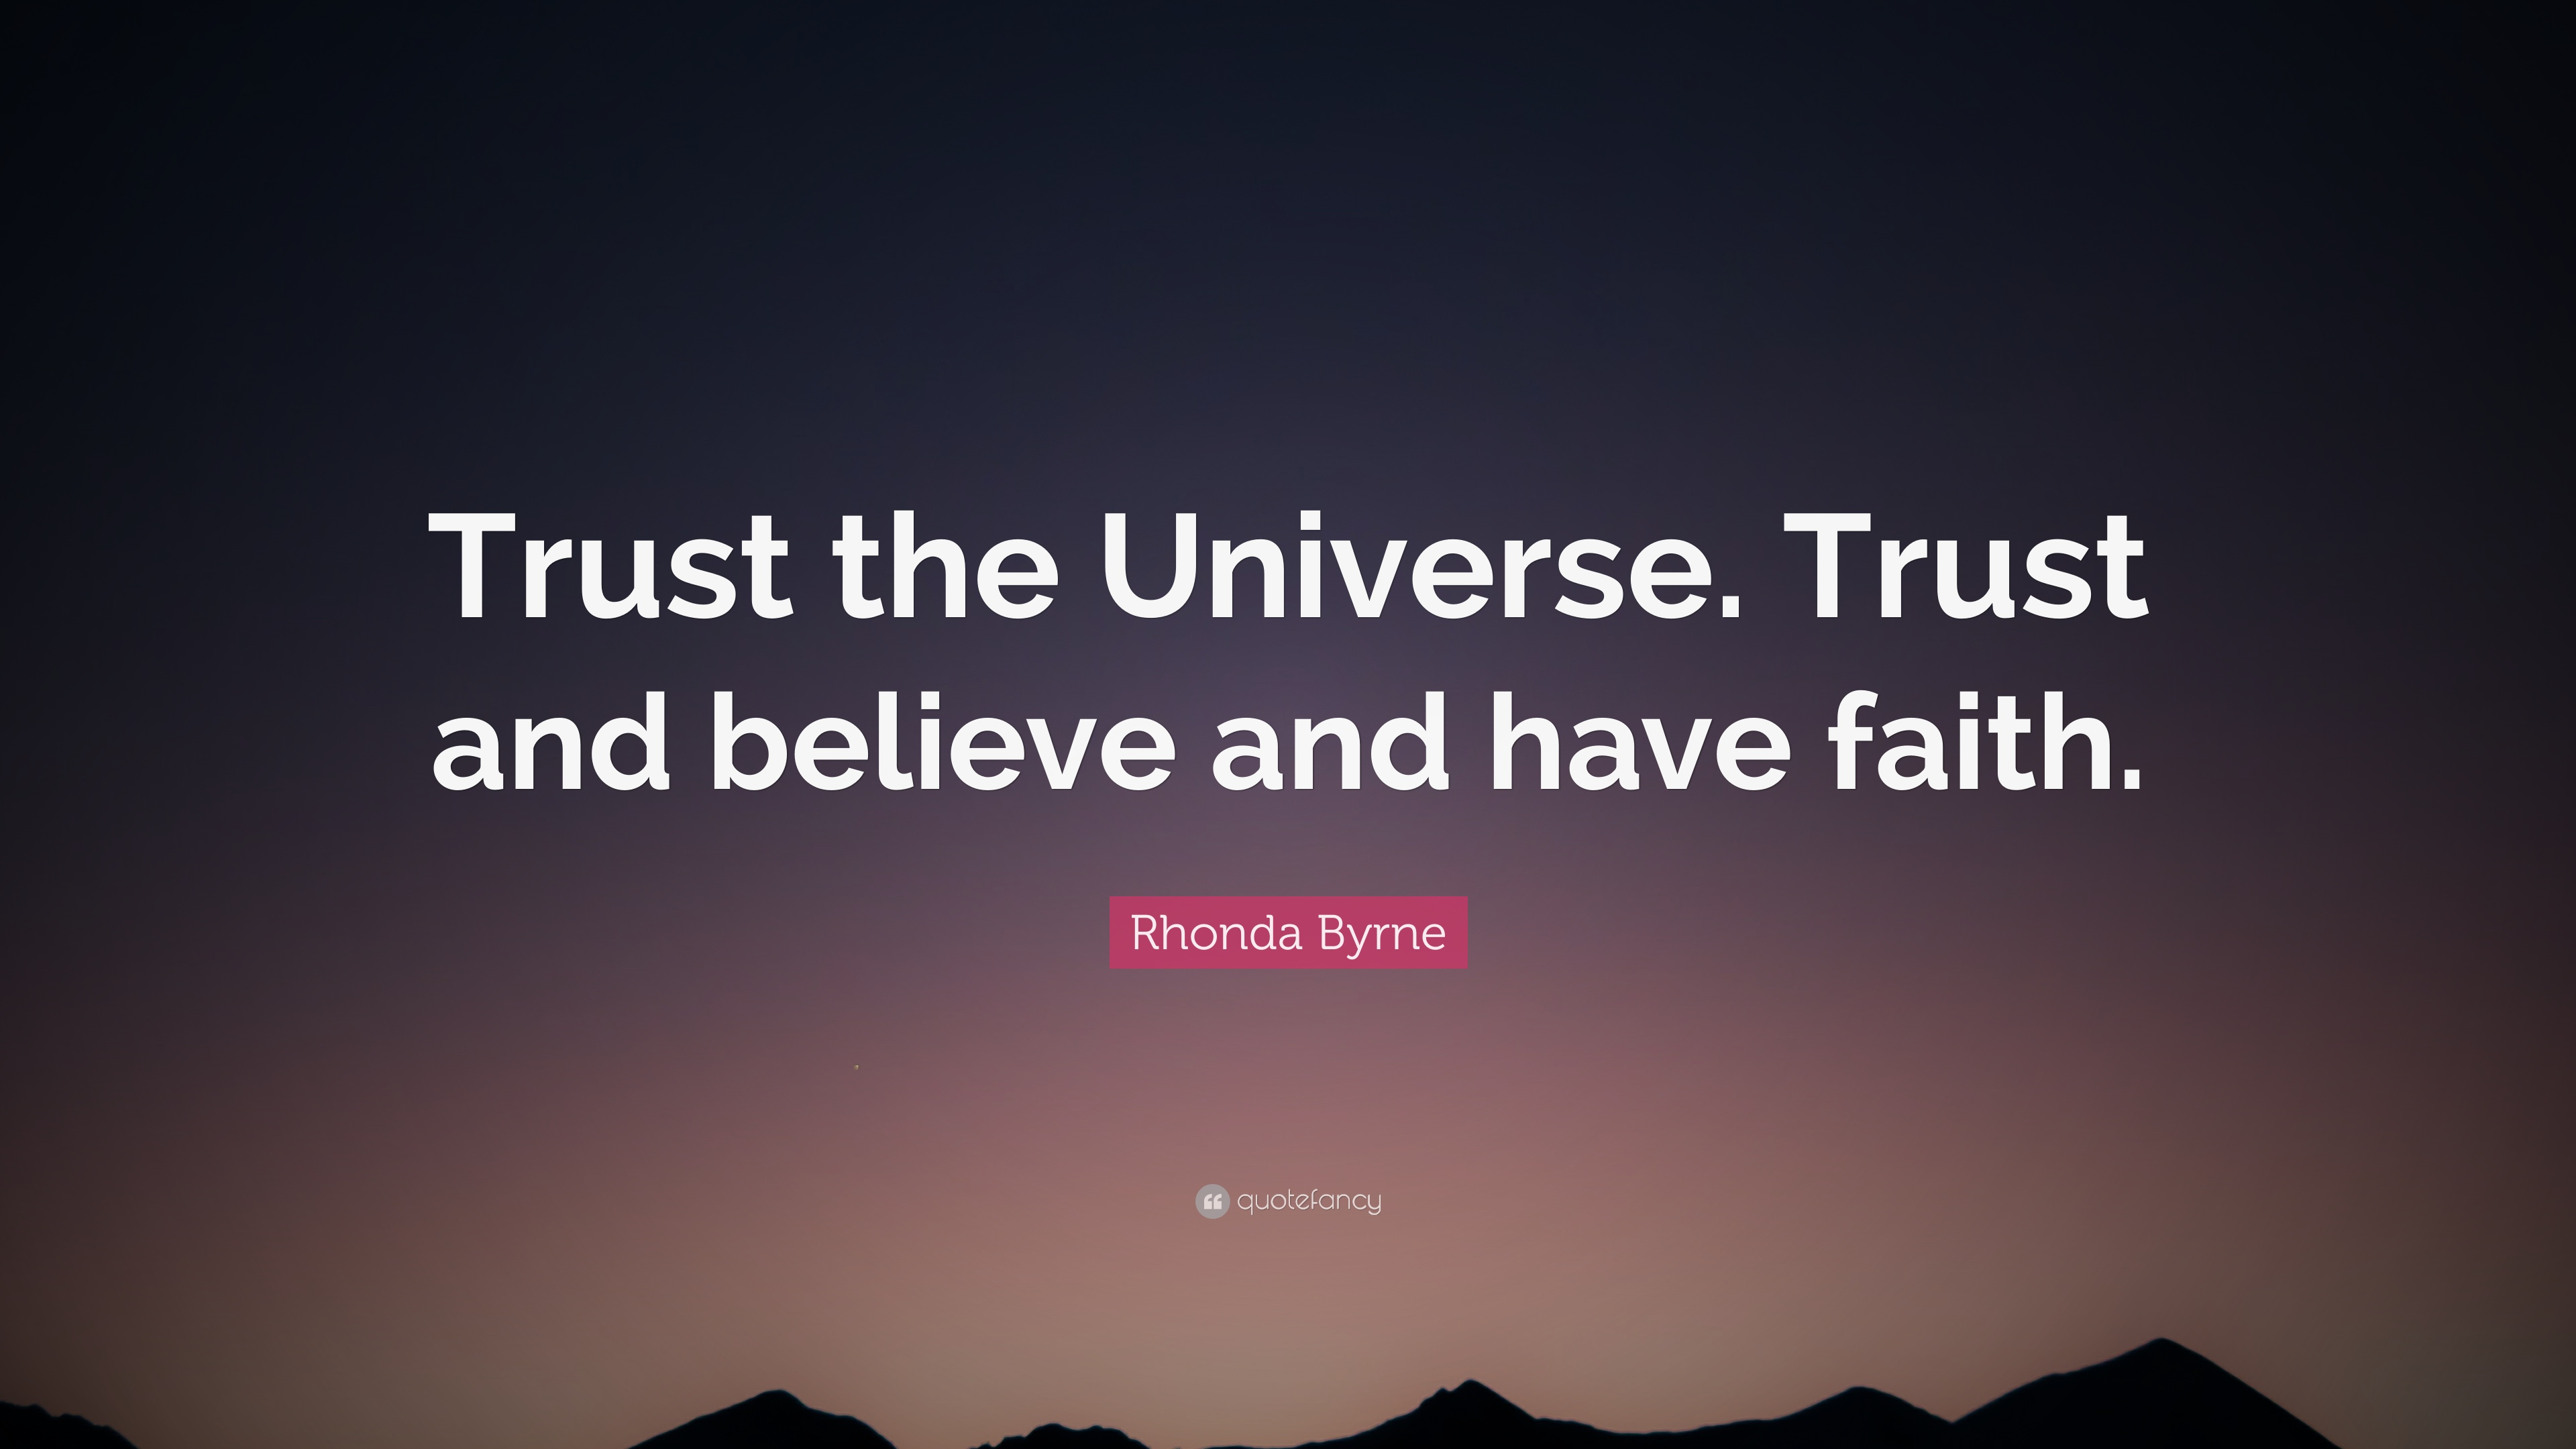 Conor Mcgregor Quote Wallpaper Rhonda Byrne Quote Trust The Universe Trust And Believe